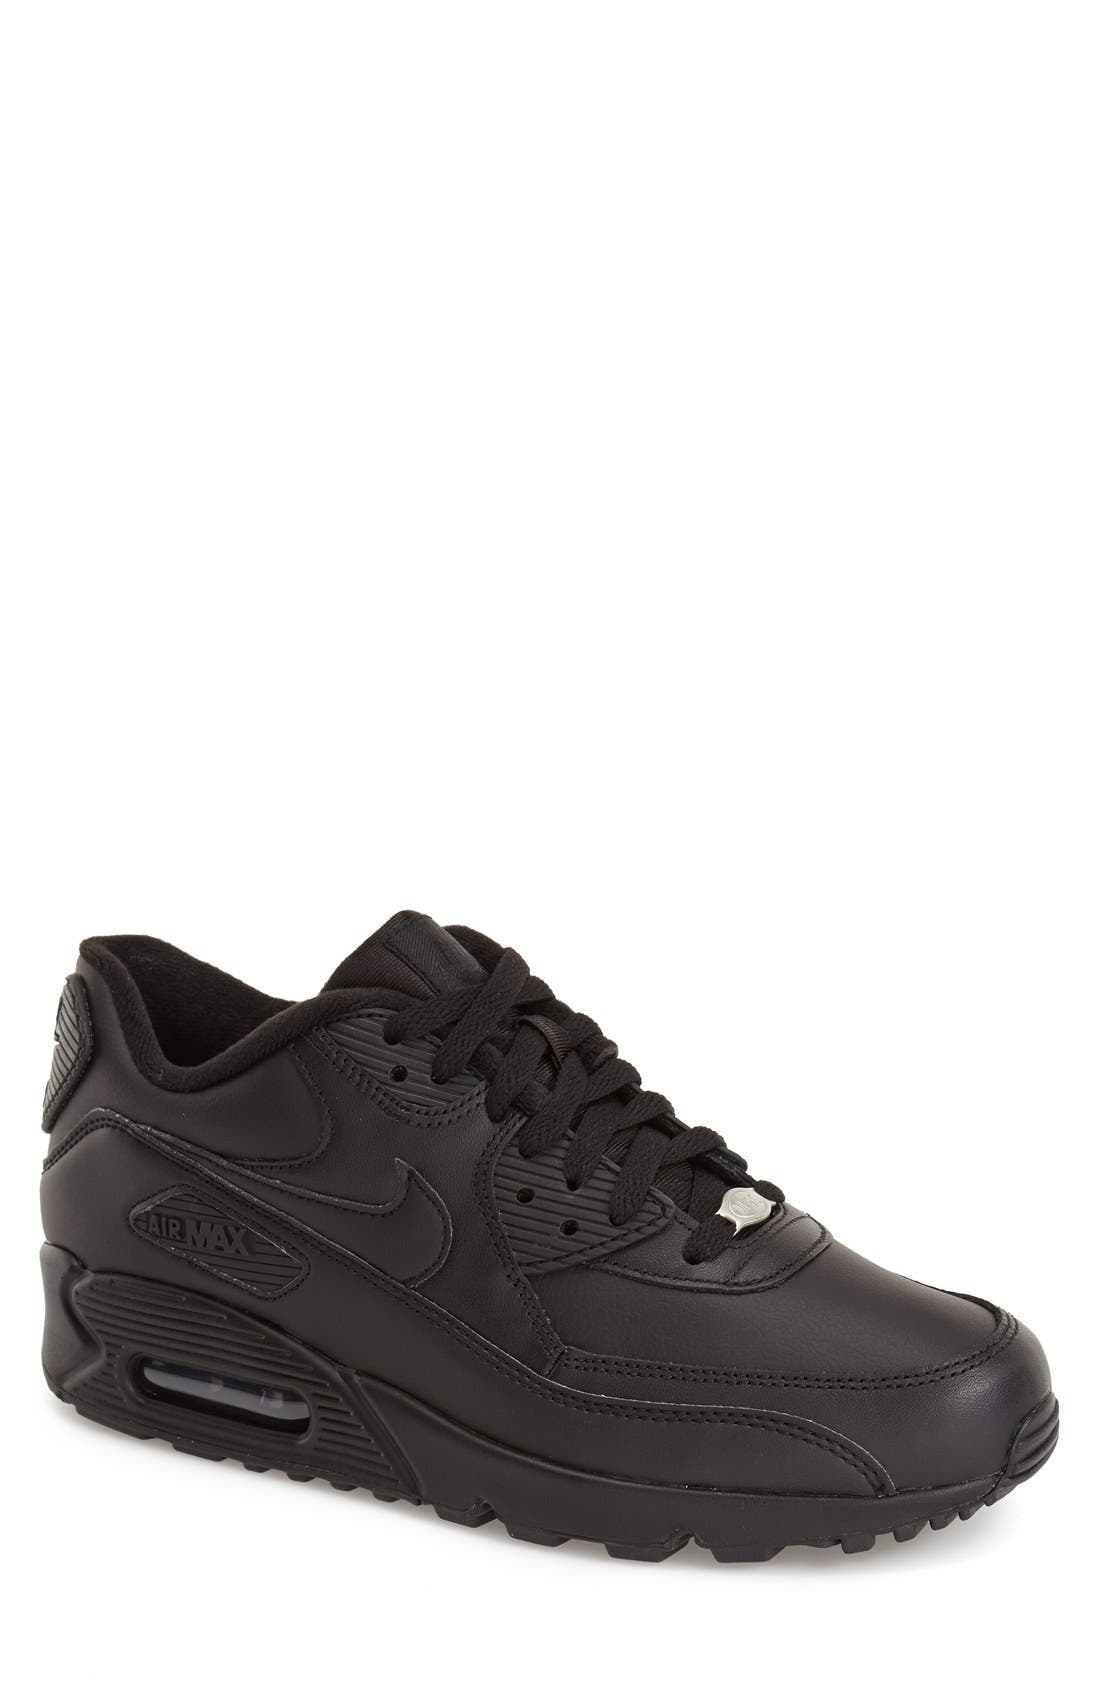 'Air Max 90' Leather Sneaker,                         Main,                         color, 001